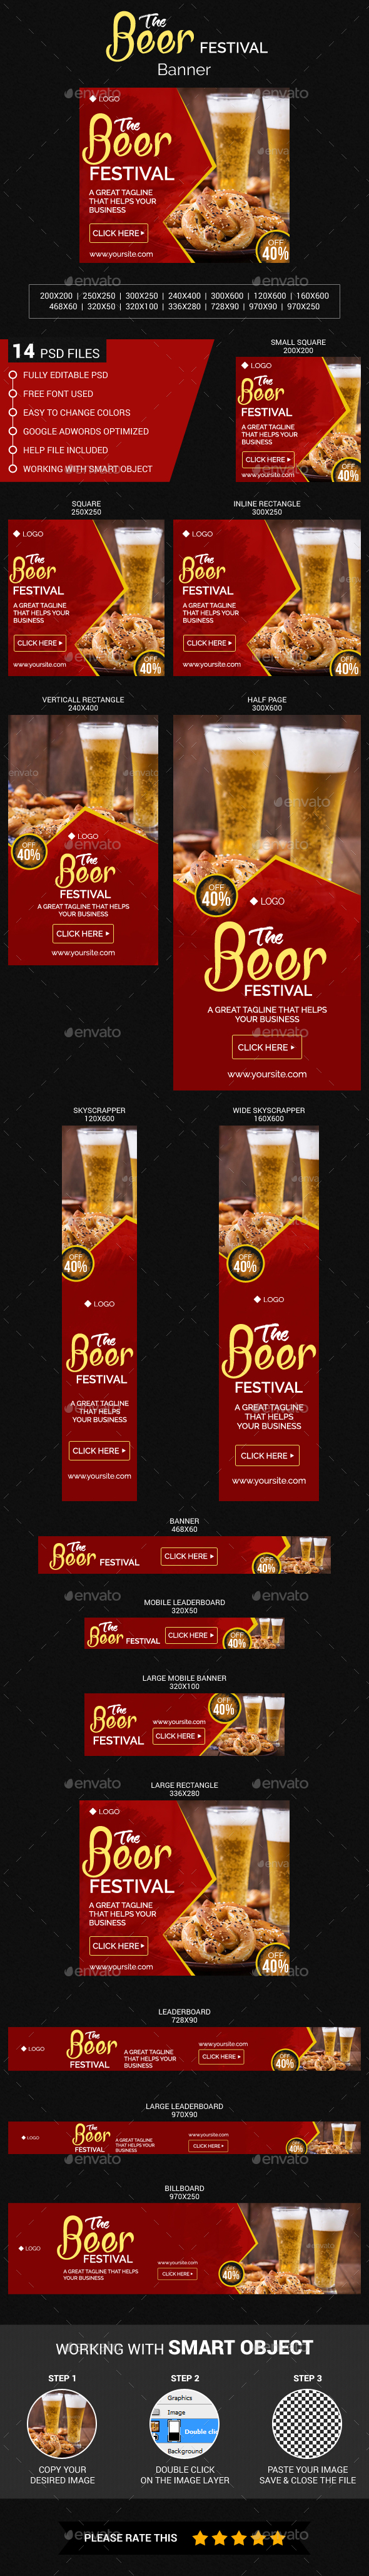 Beer Festival Banner - Banners & Ads Web Elements